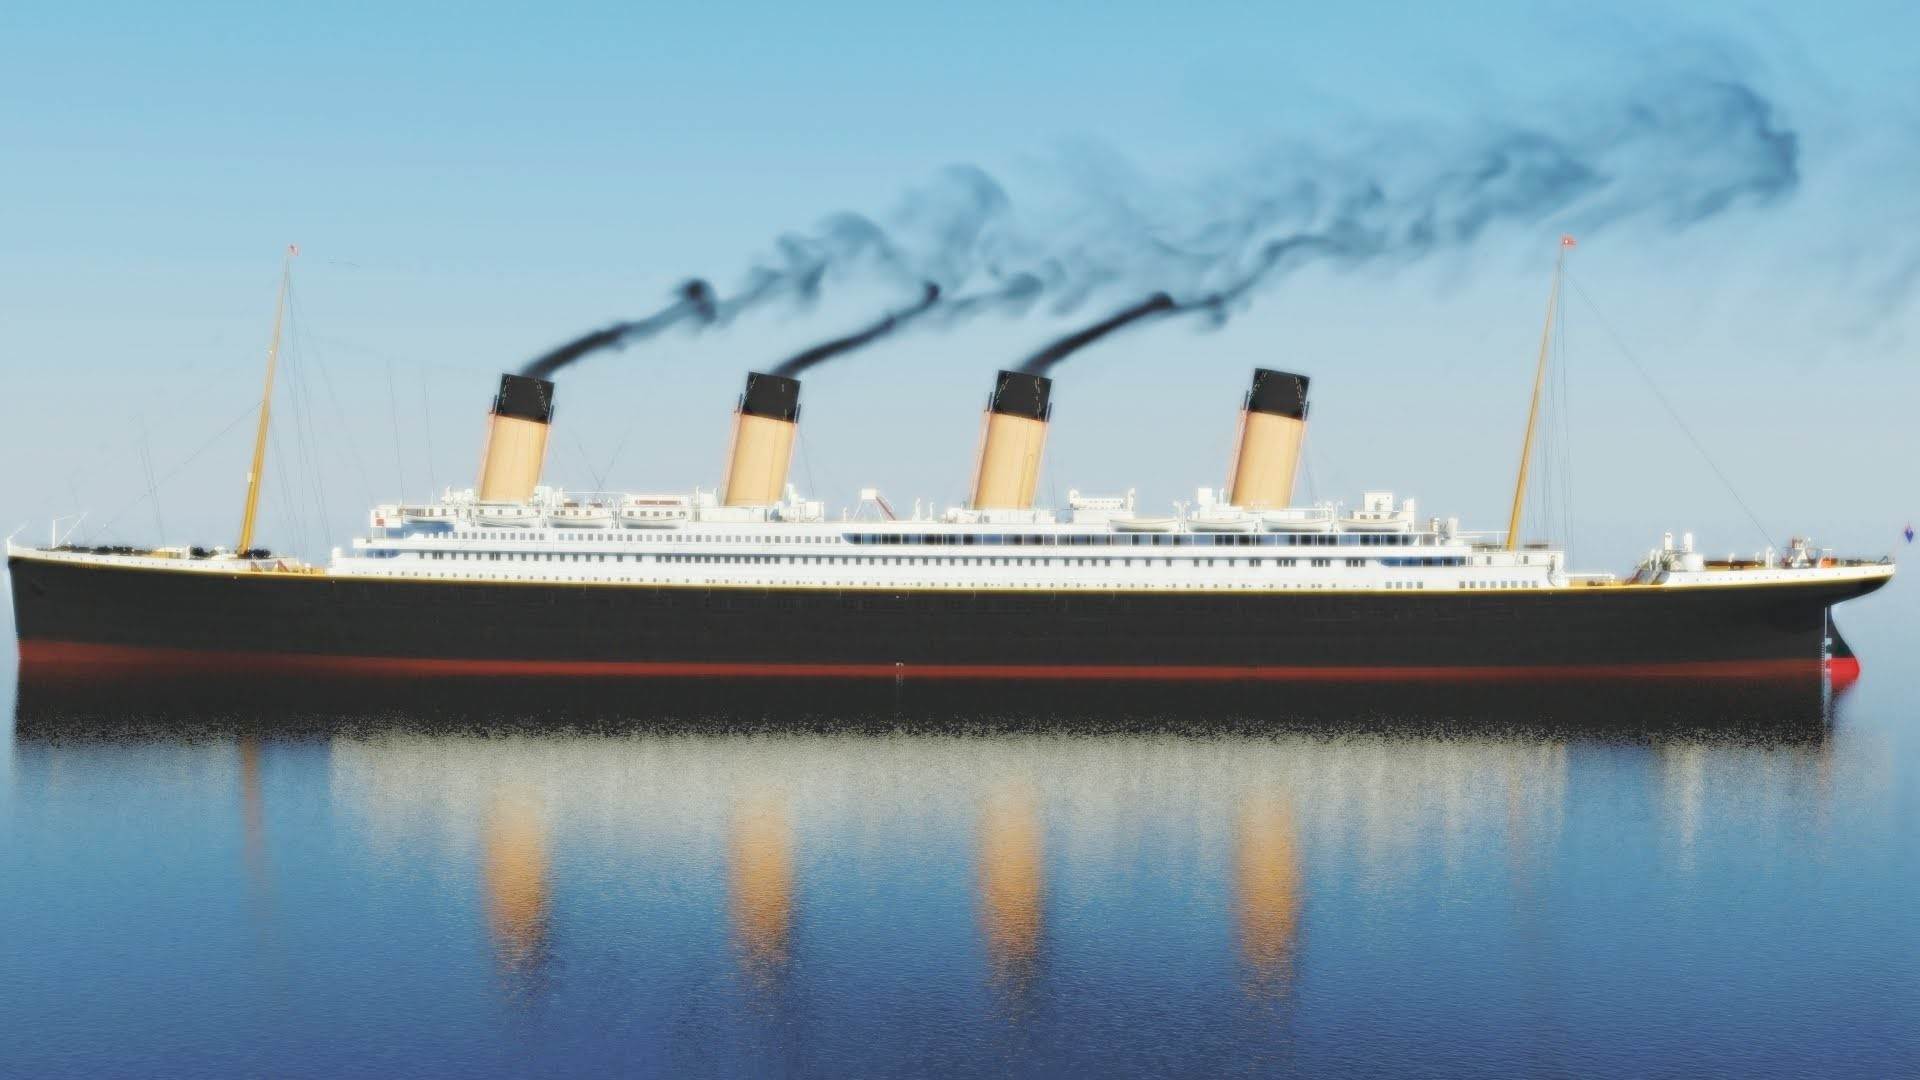 Titanic 2 Wallpapers 67 Images